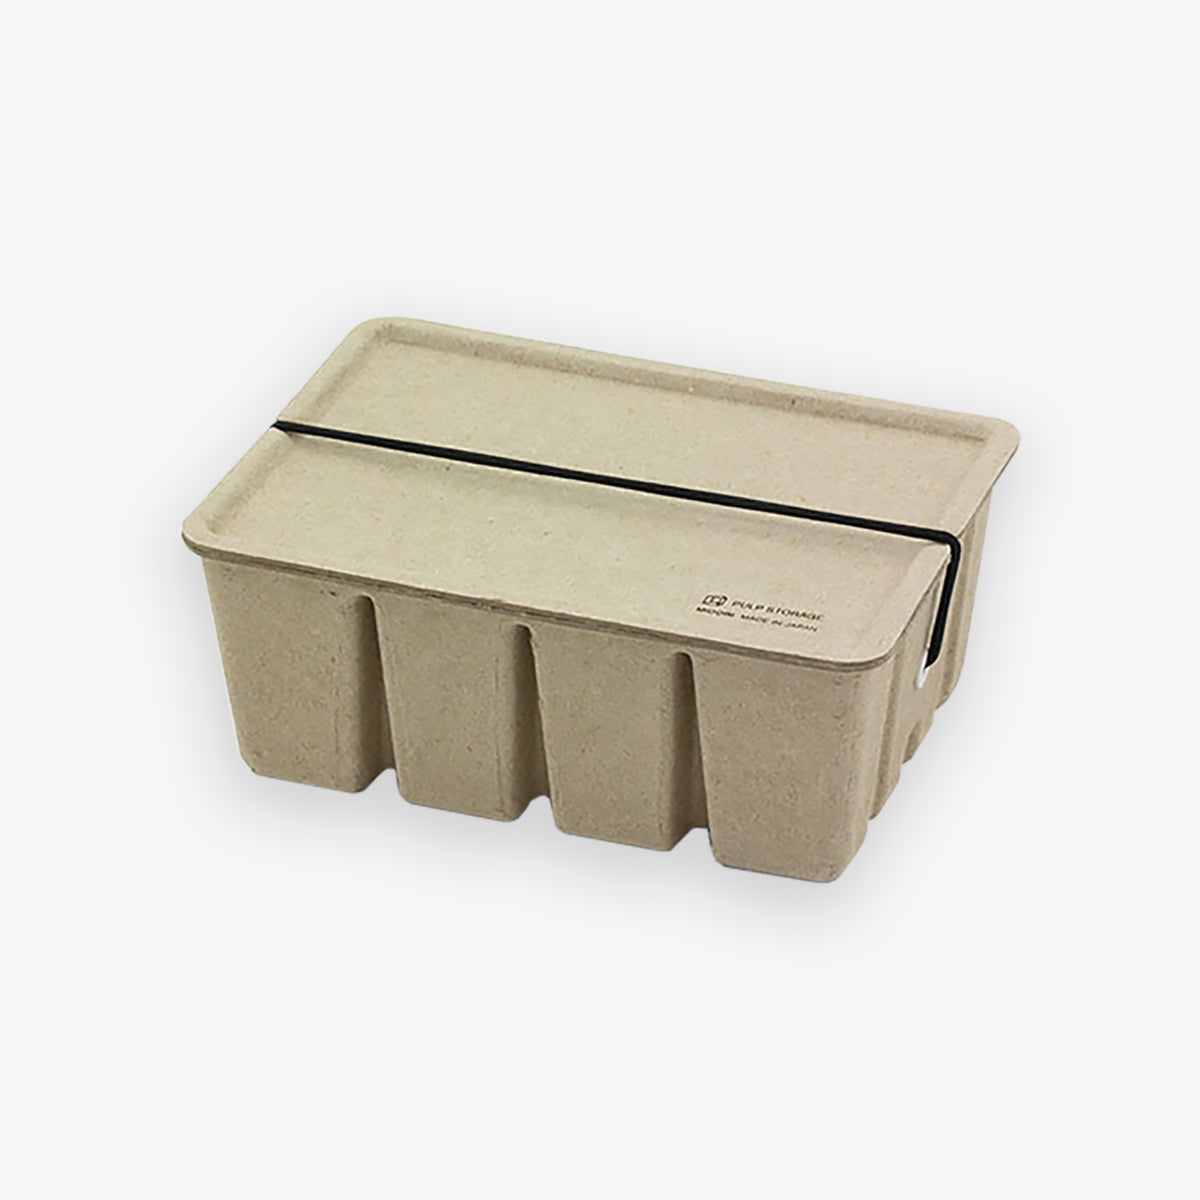 PULP CARD BOX PASCO // BEIGE